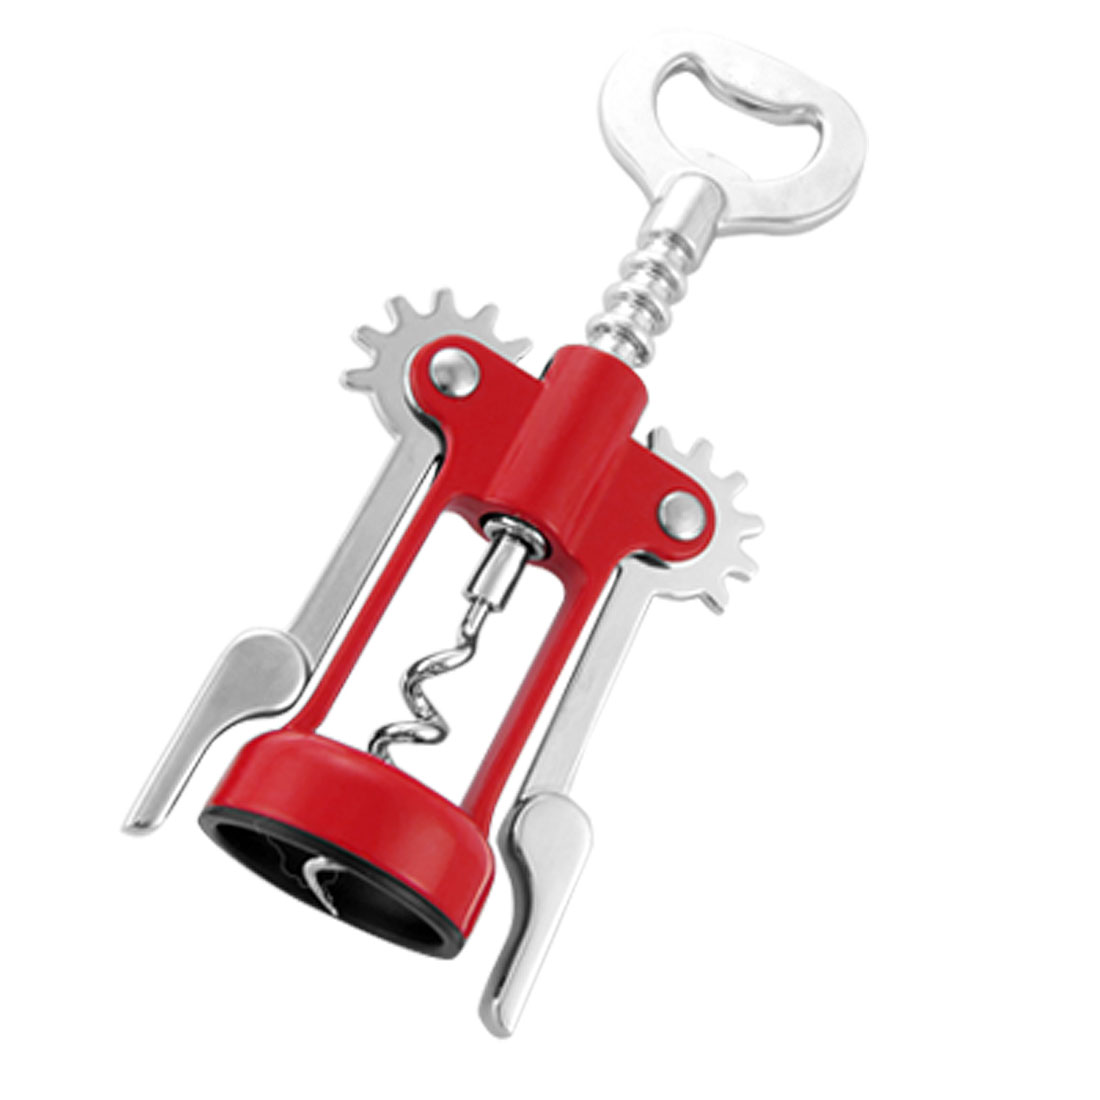 Red Silver Tone Metal Rotatory Corkscrew Bottle Opener